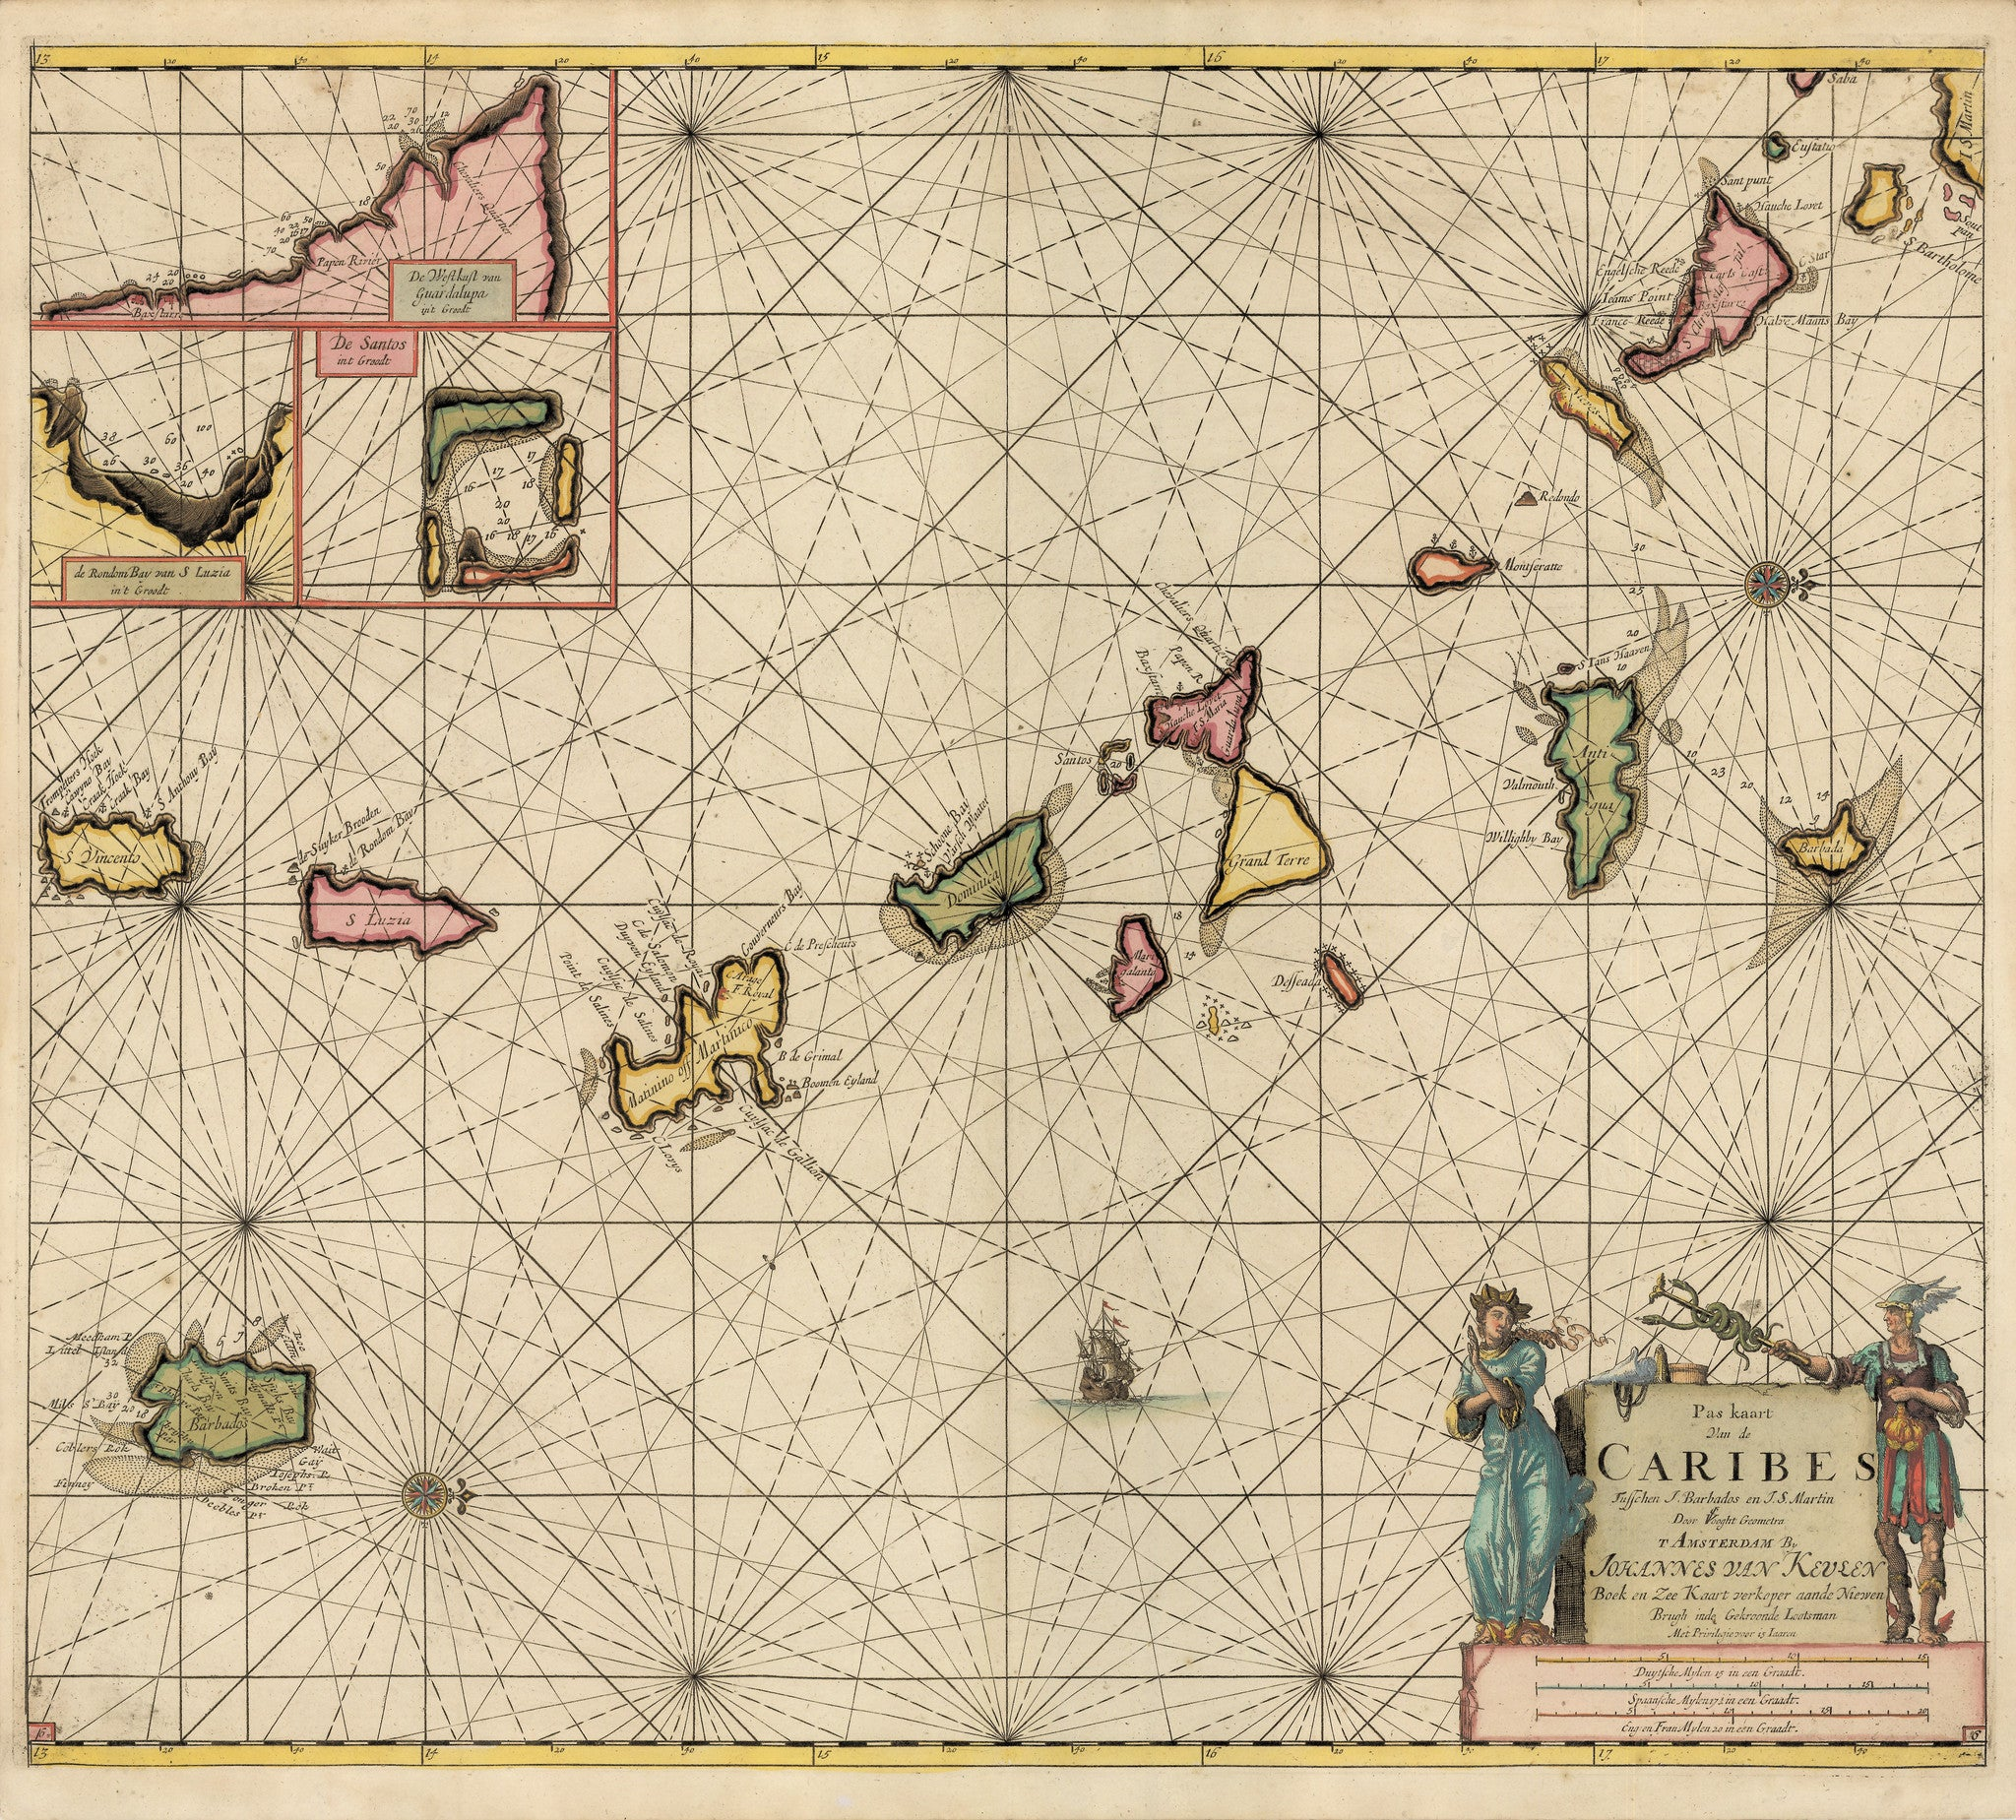 Authentic Antique Map of the Lesser Antilles: Pas kaart Van de Caribes Tusschen I. Barbados en I S. Martin …By: Johannes Van Keulen Date: 1684 (published) Amsterdam